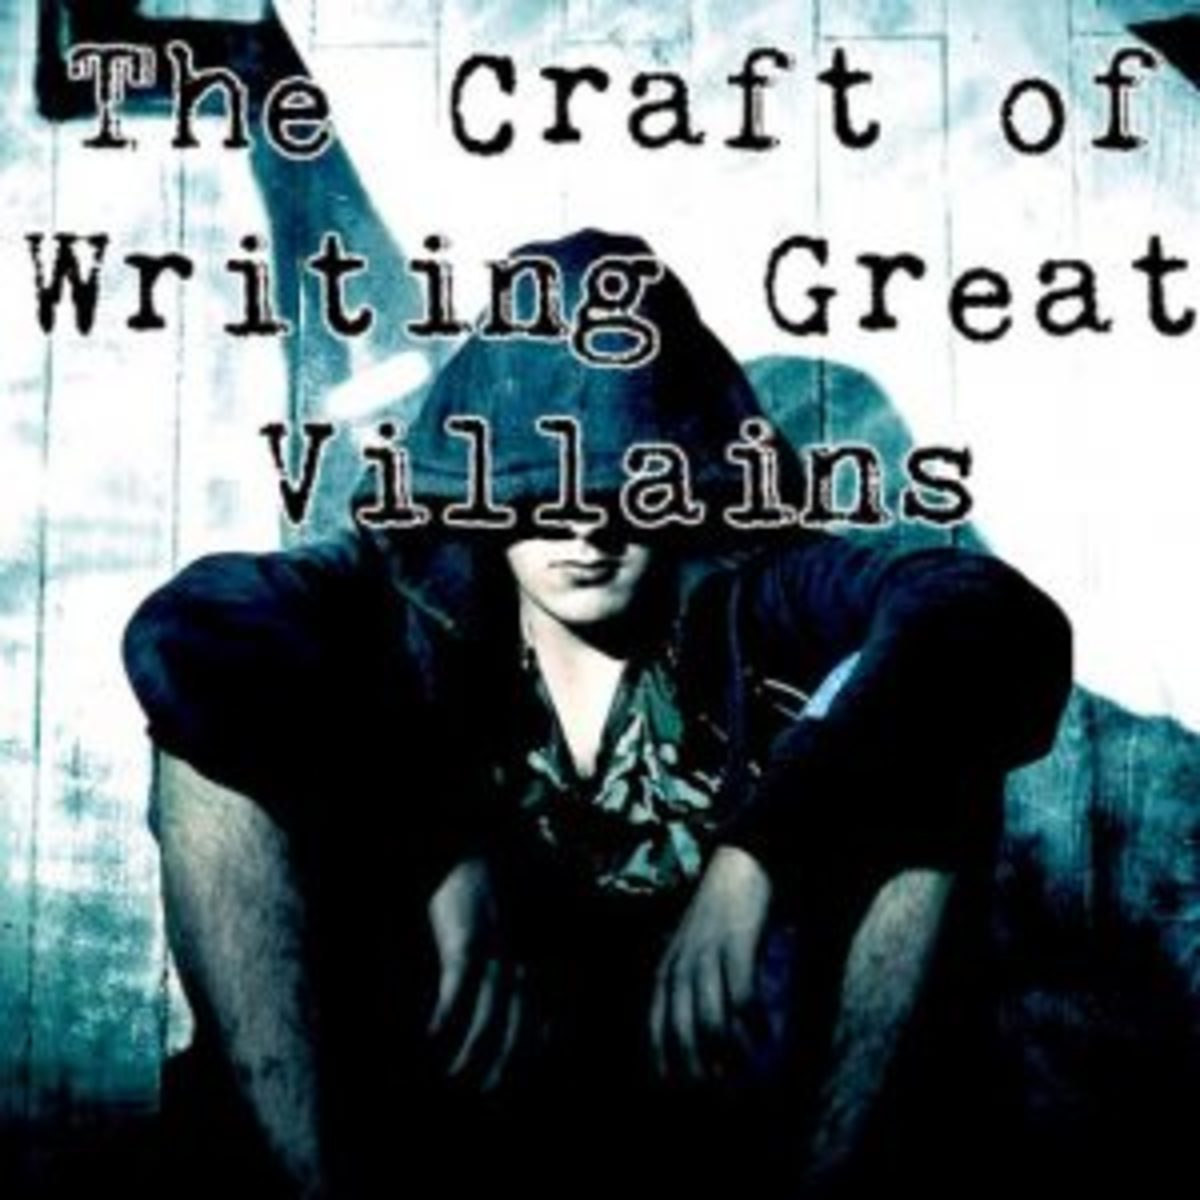 ws-great-villians_medium